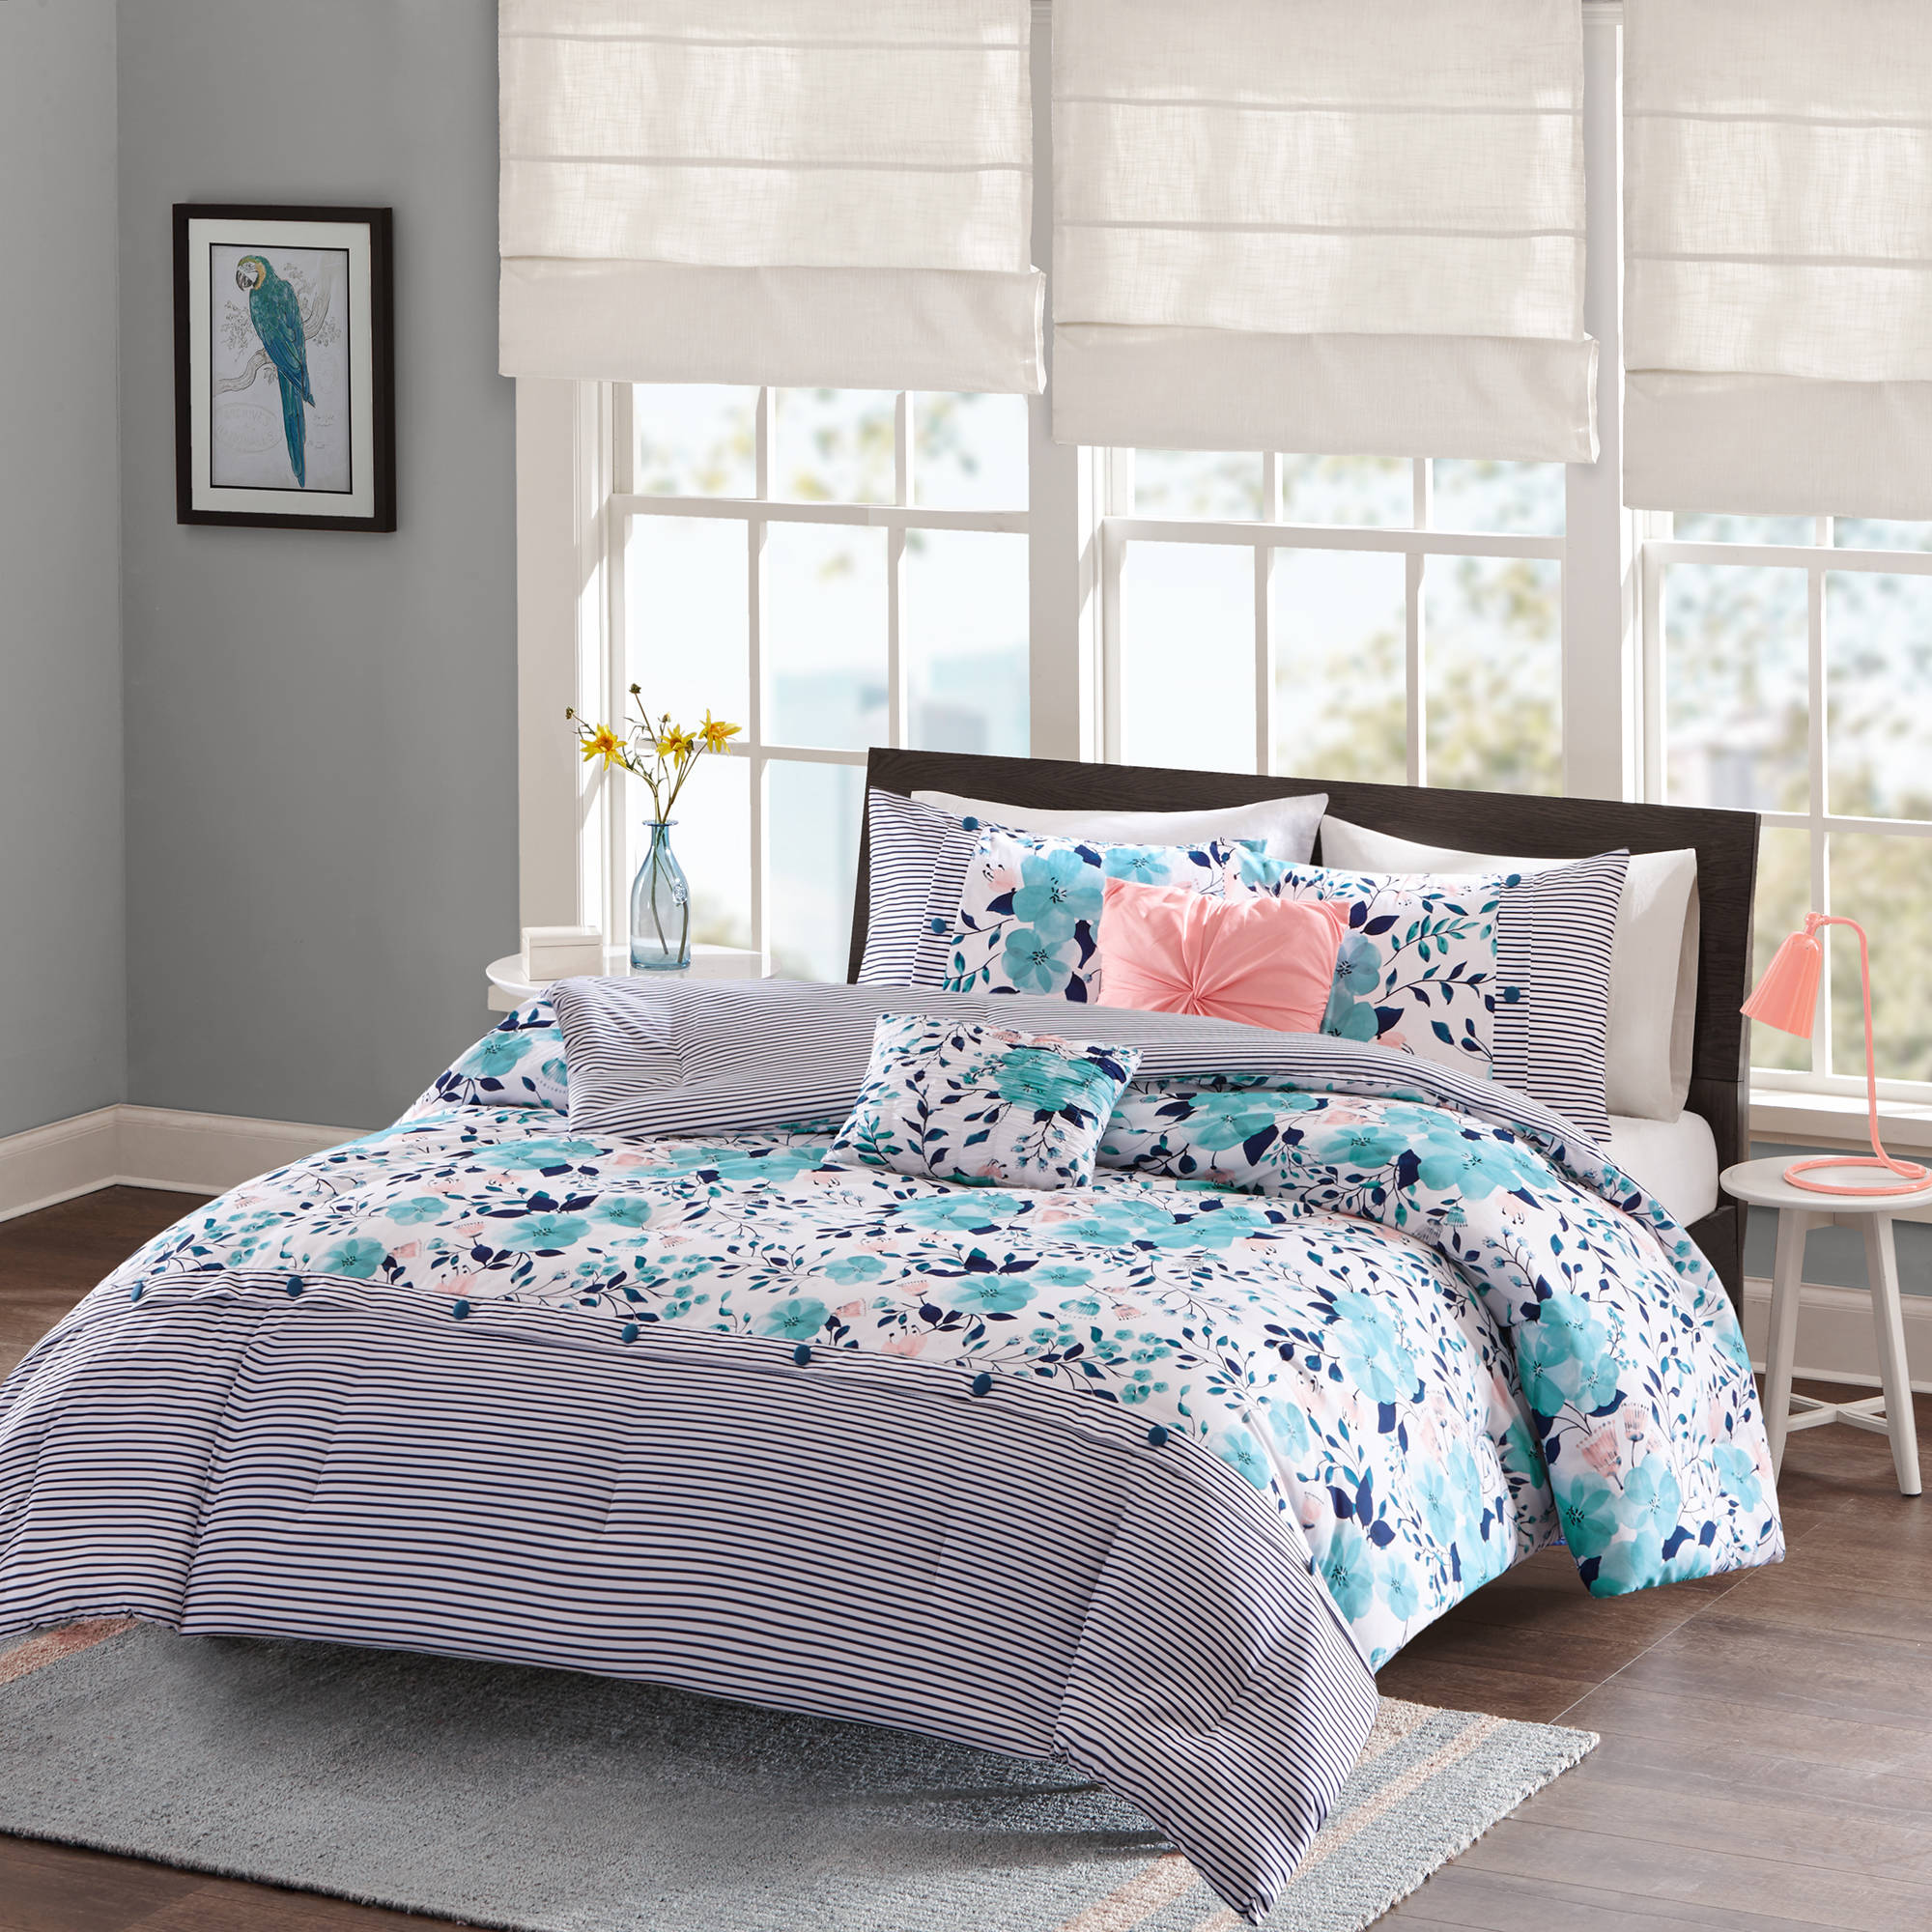 Home Essence Apartment Brie Bedding Comforter Set